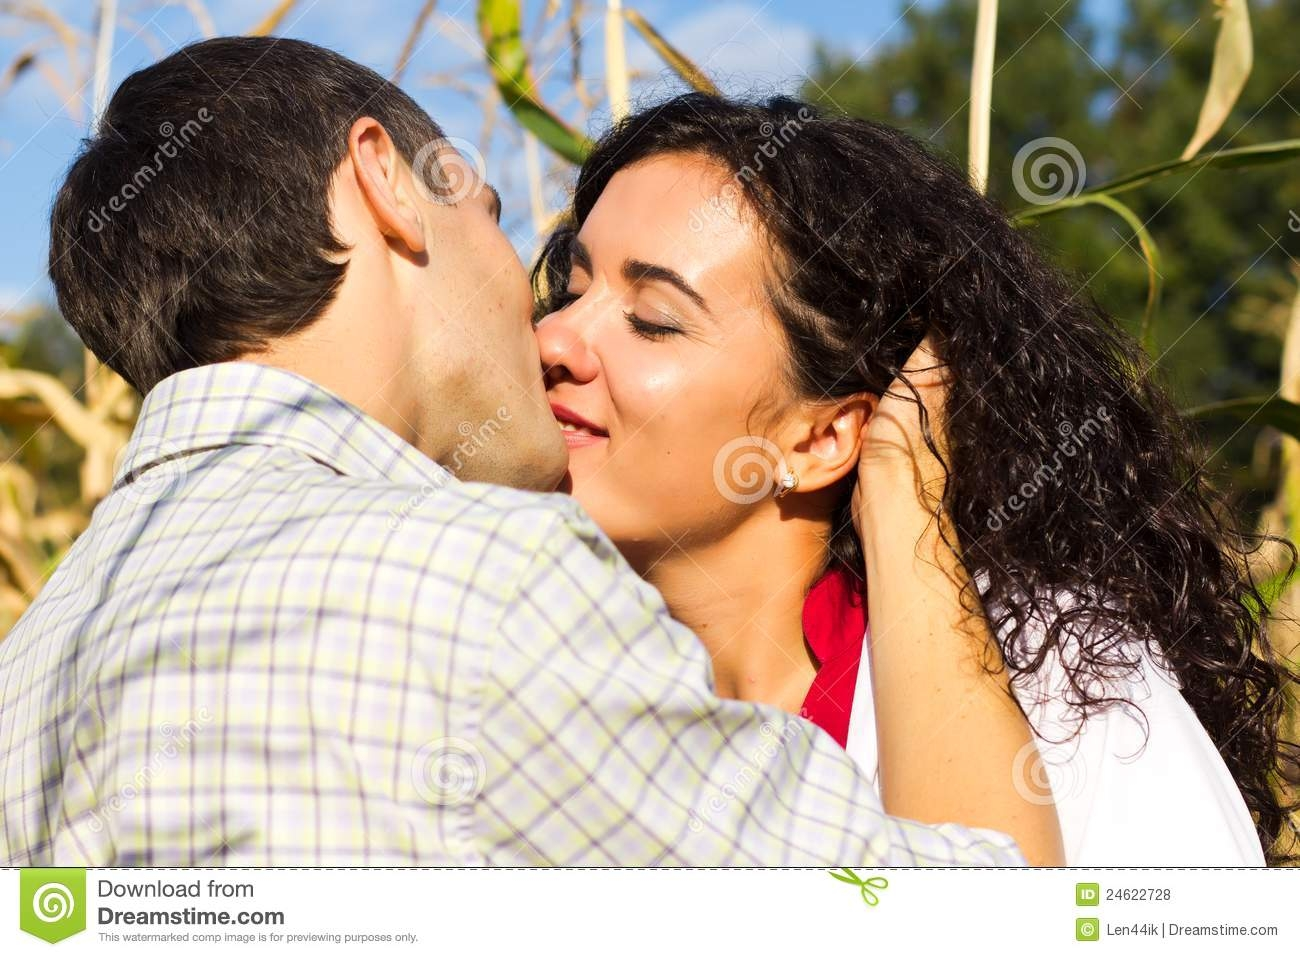 beautiful-images-of-love-couple-free-download-HD-Beautiful-Happy-Love-Couple-Kissing-Royalty-Fre-wallpaper-wp3403010